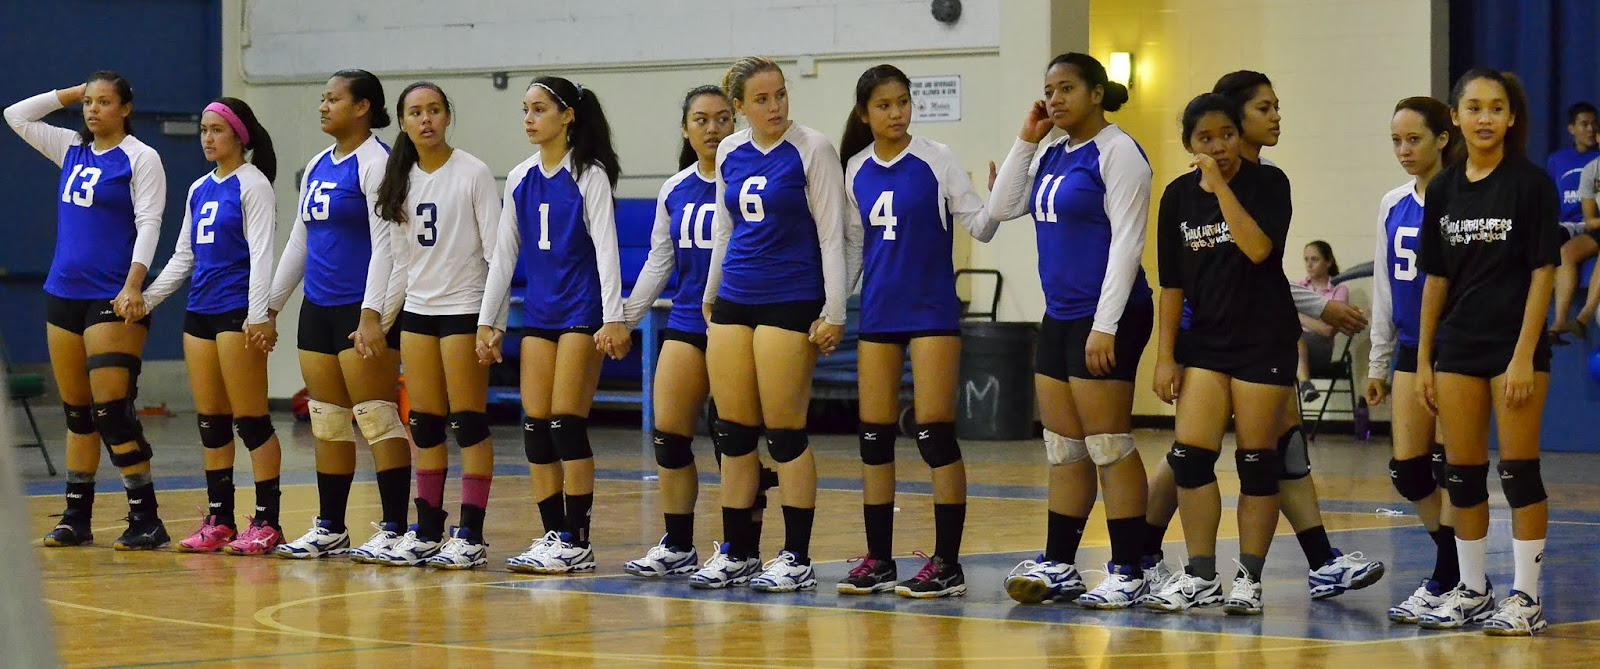 Lahainaluna Sports Shooter: MIL Girls Volleyball ...